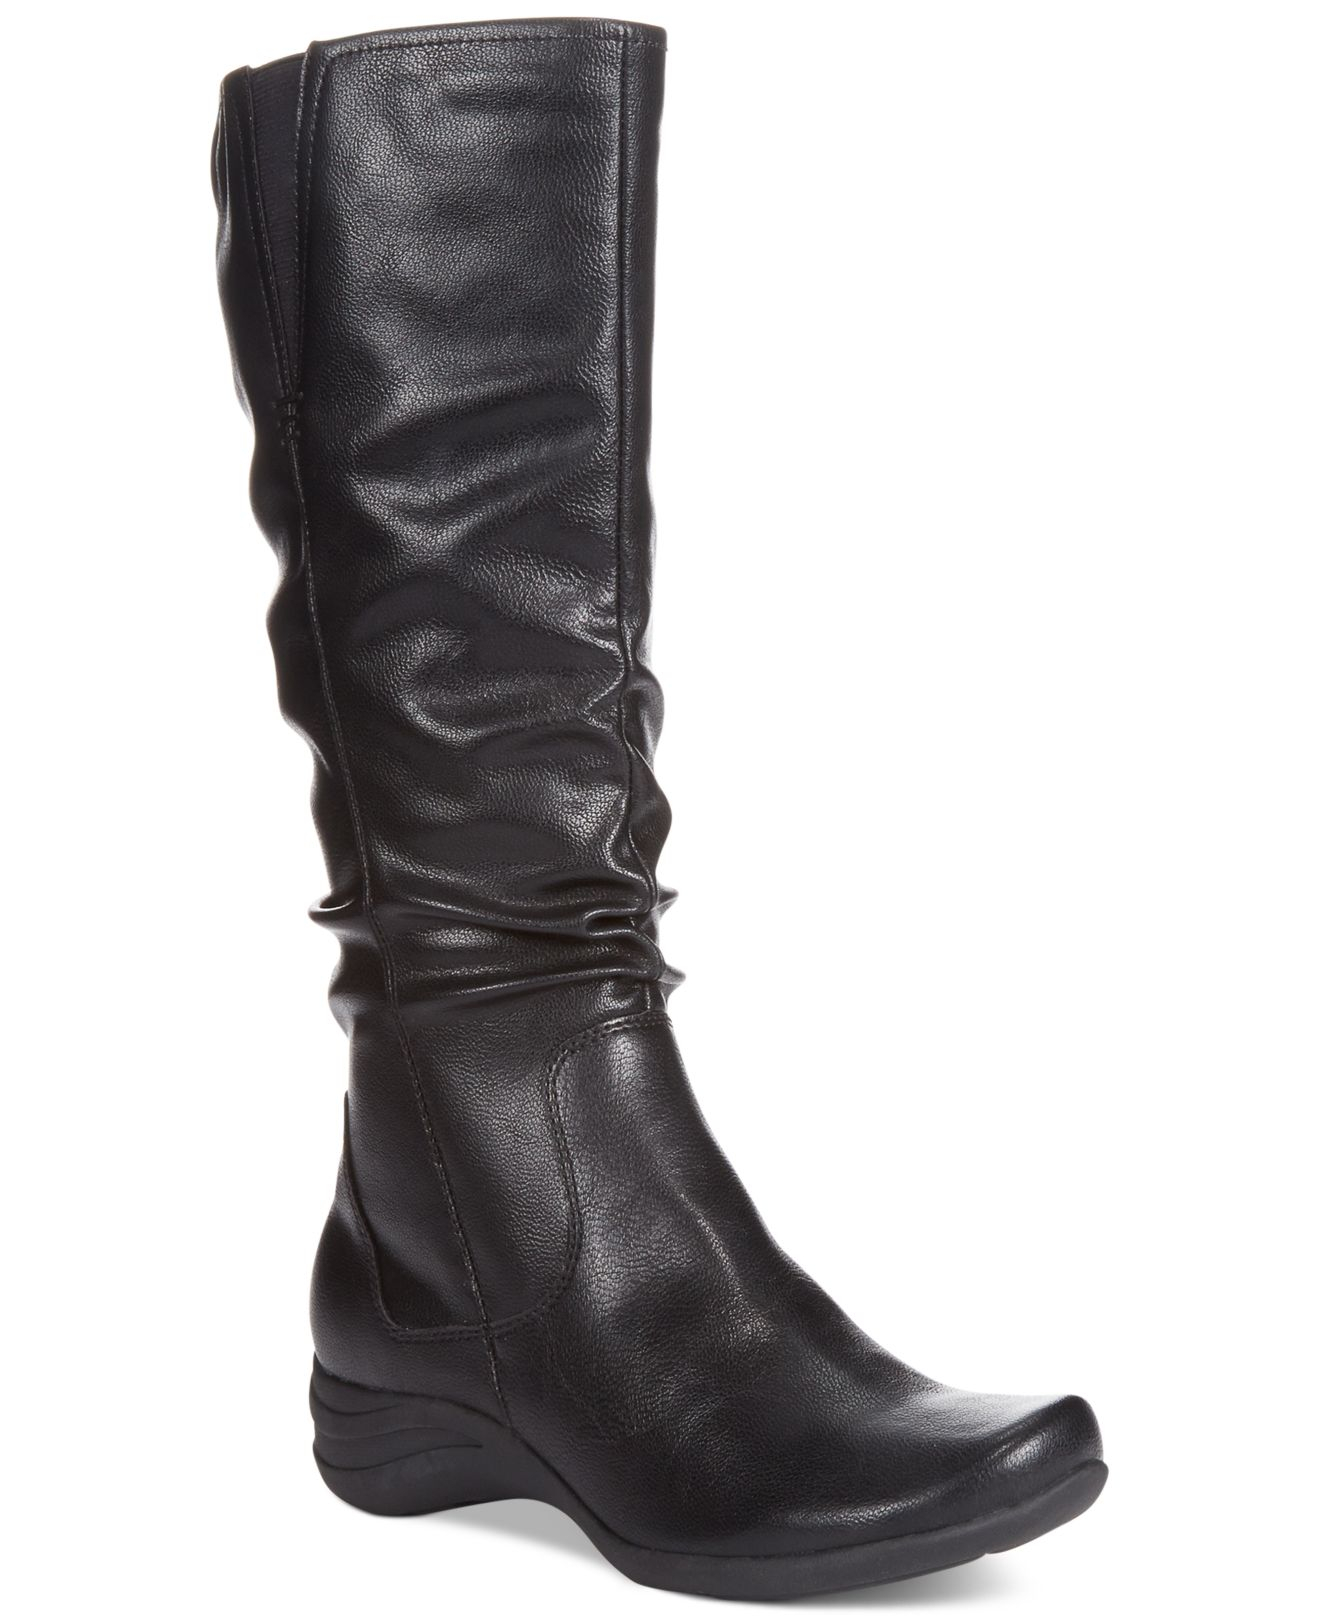 Awesome Hush Puppies Emel Overton Leather Boots For Women  Save 56